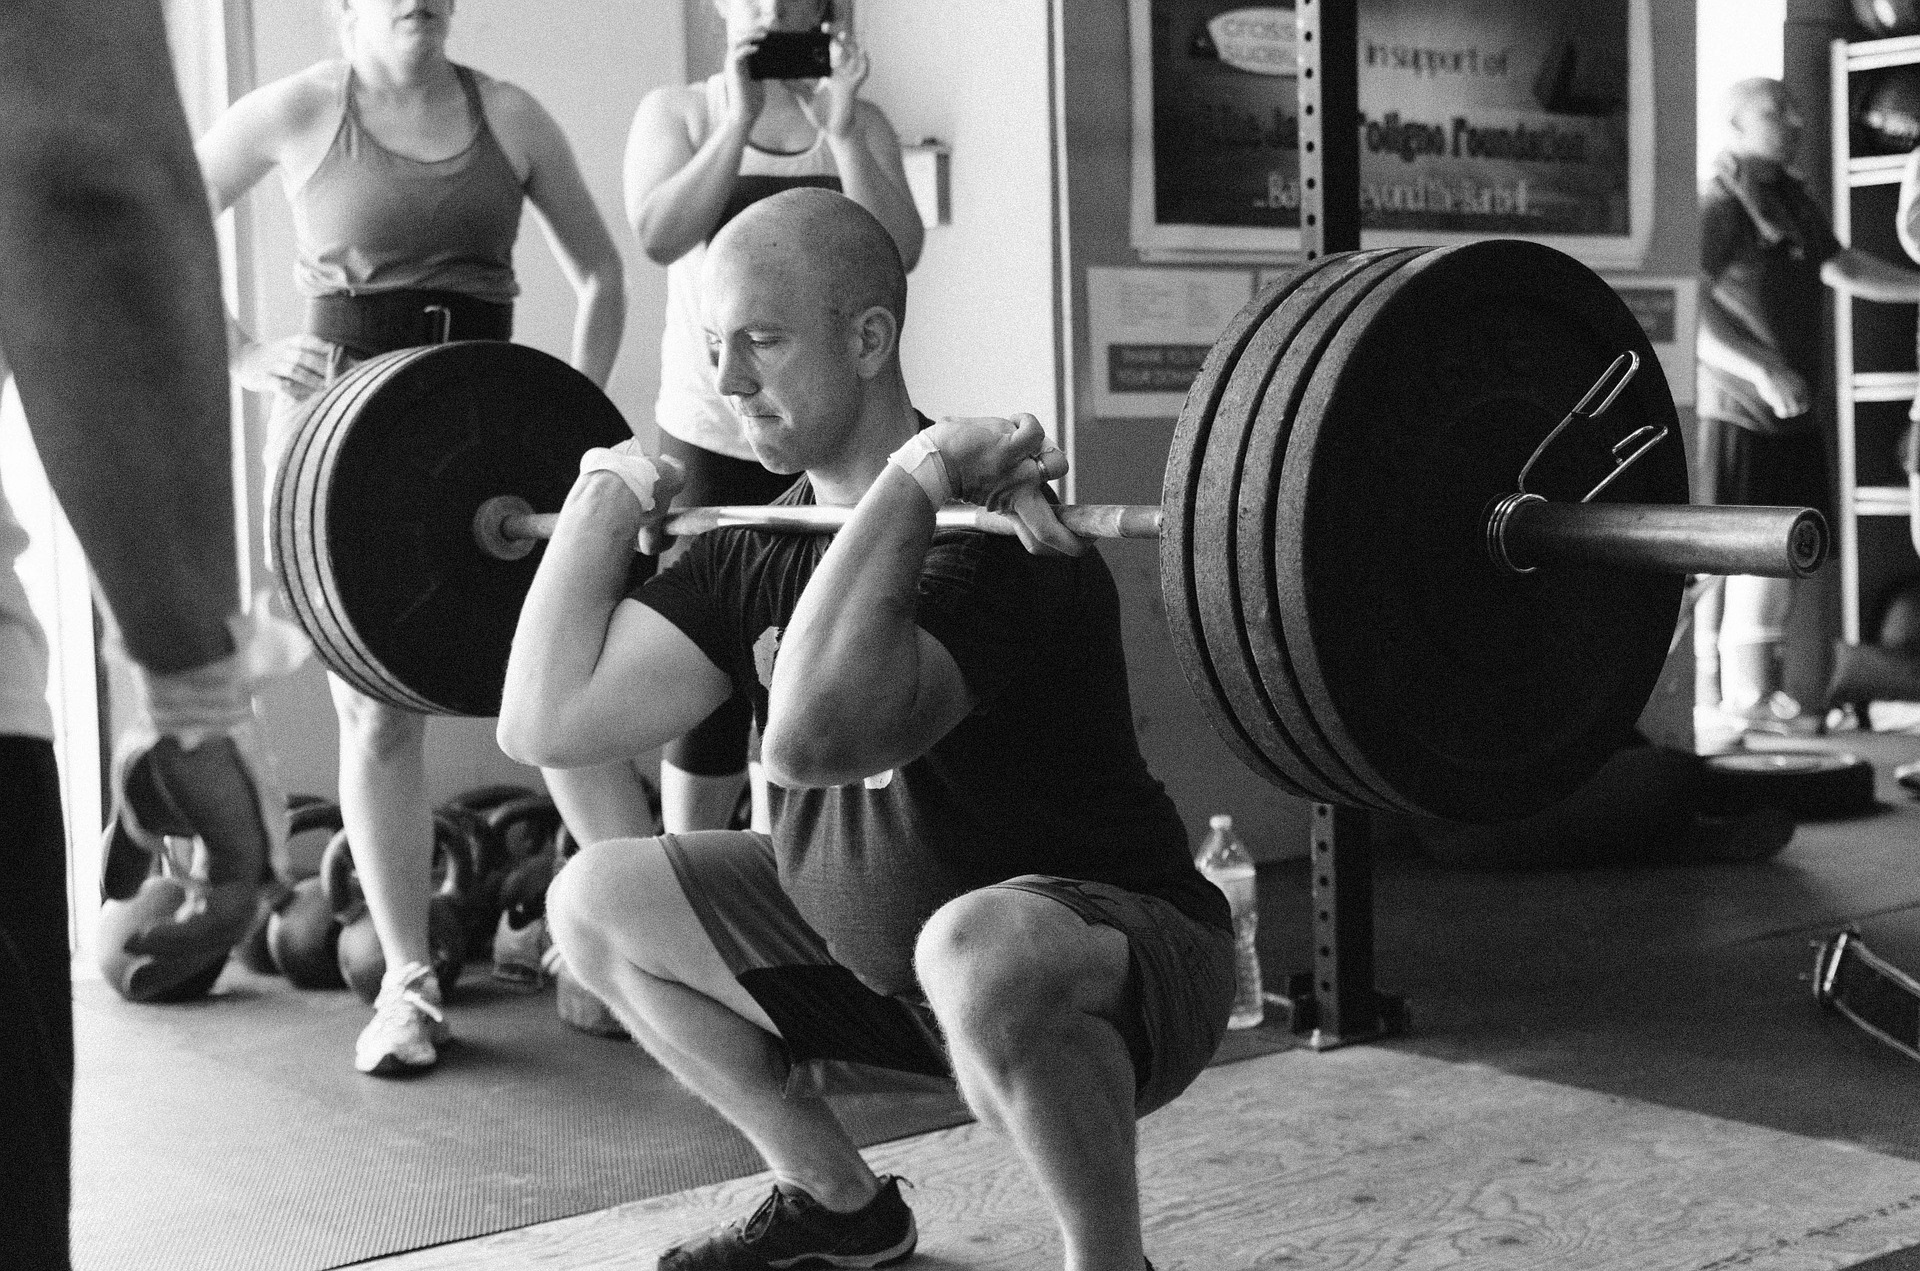 weightlifting-521470_1920